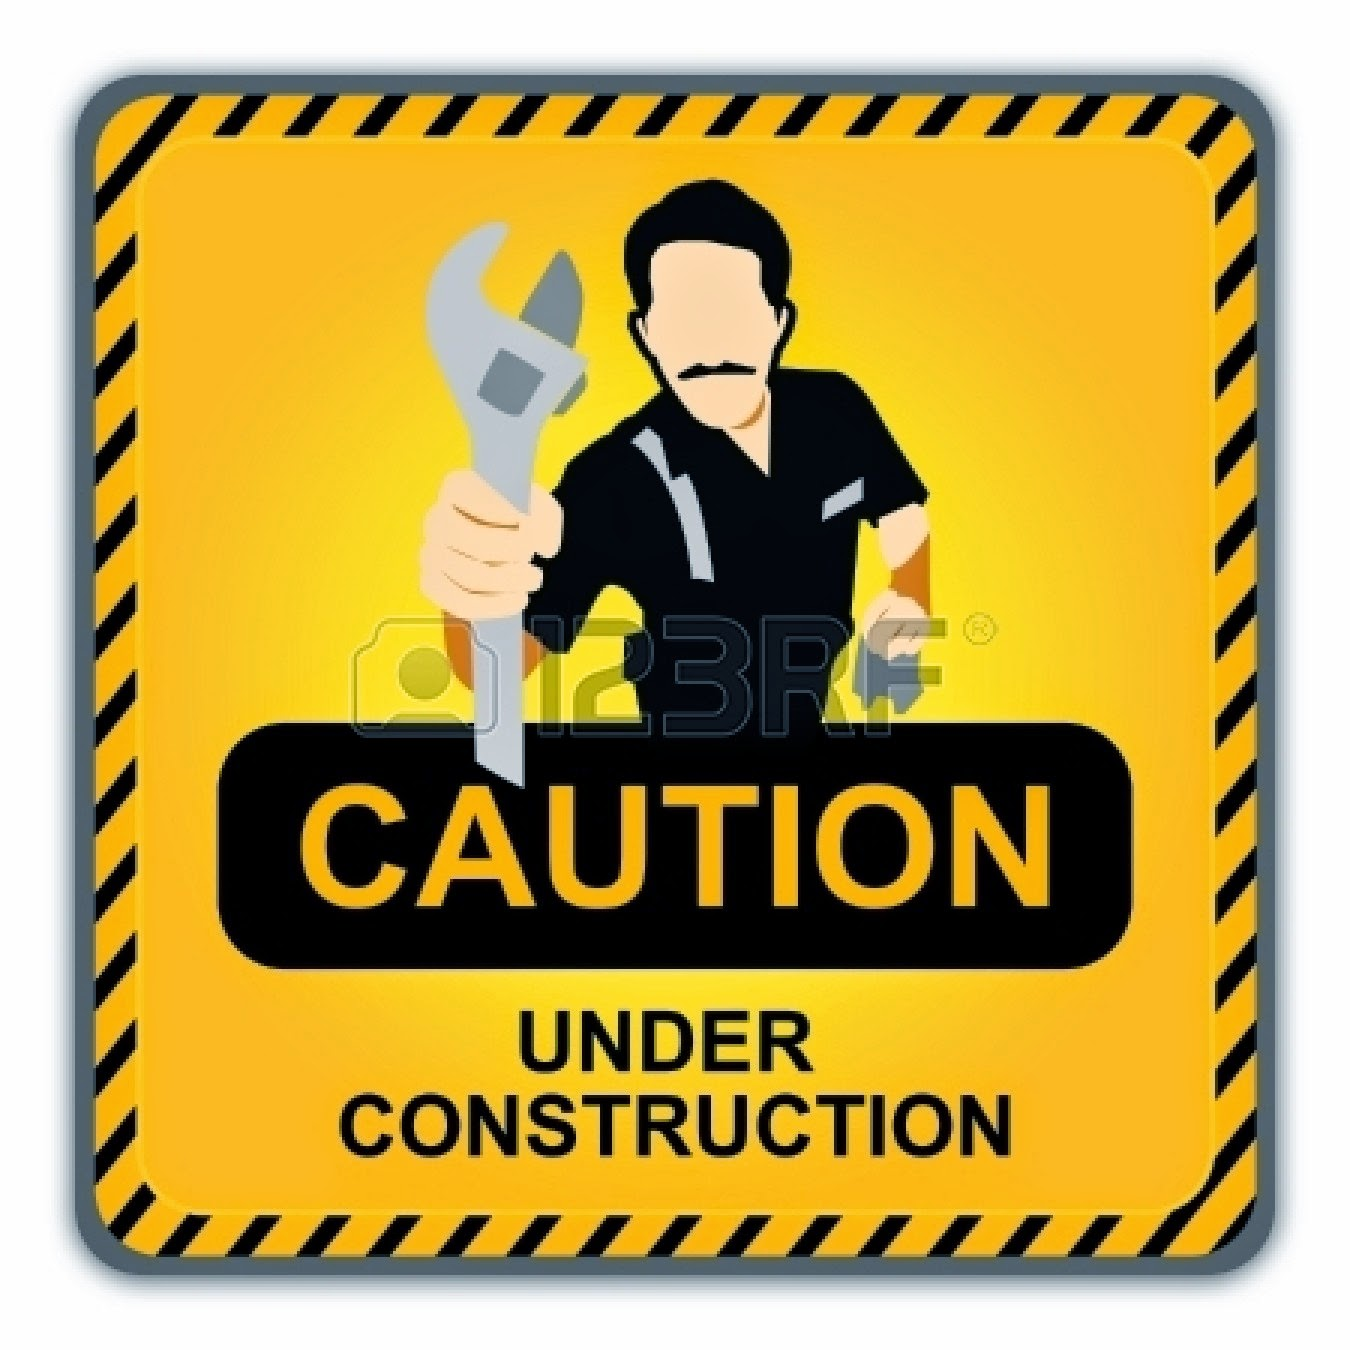 Fairway s watch the. Caution clipart proceed with caution